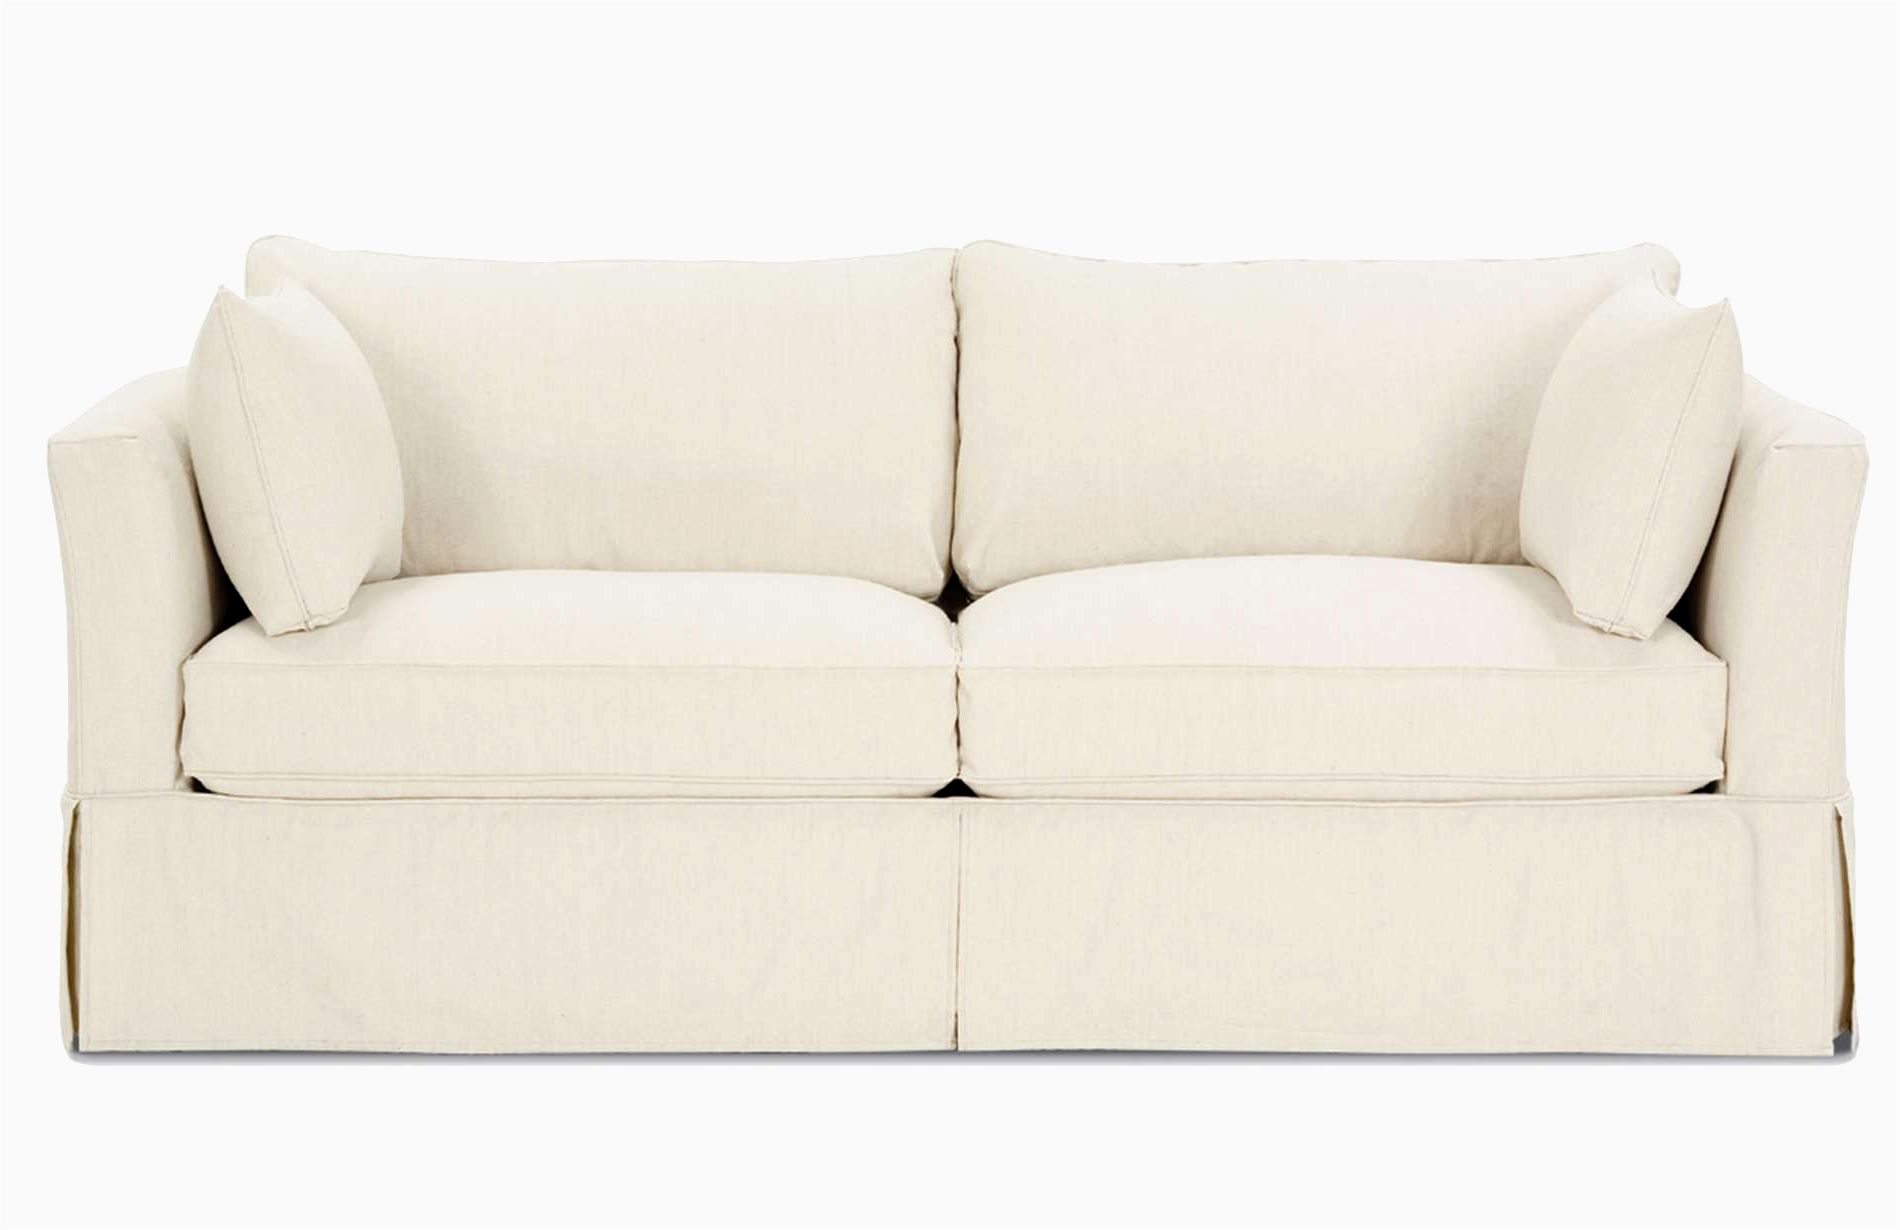 stylish down sectional sofa photograph-Best Of Down Sectional sofa Décor